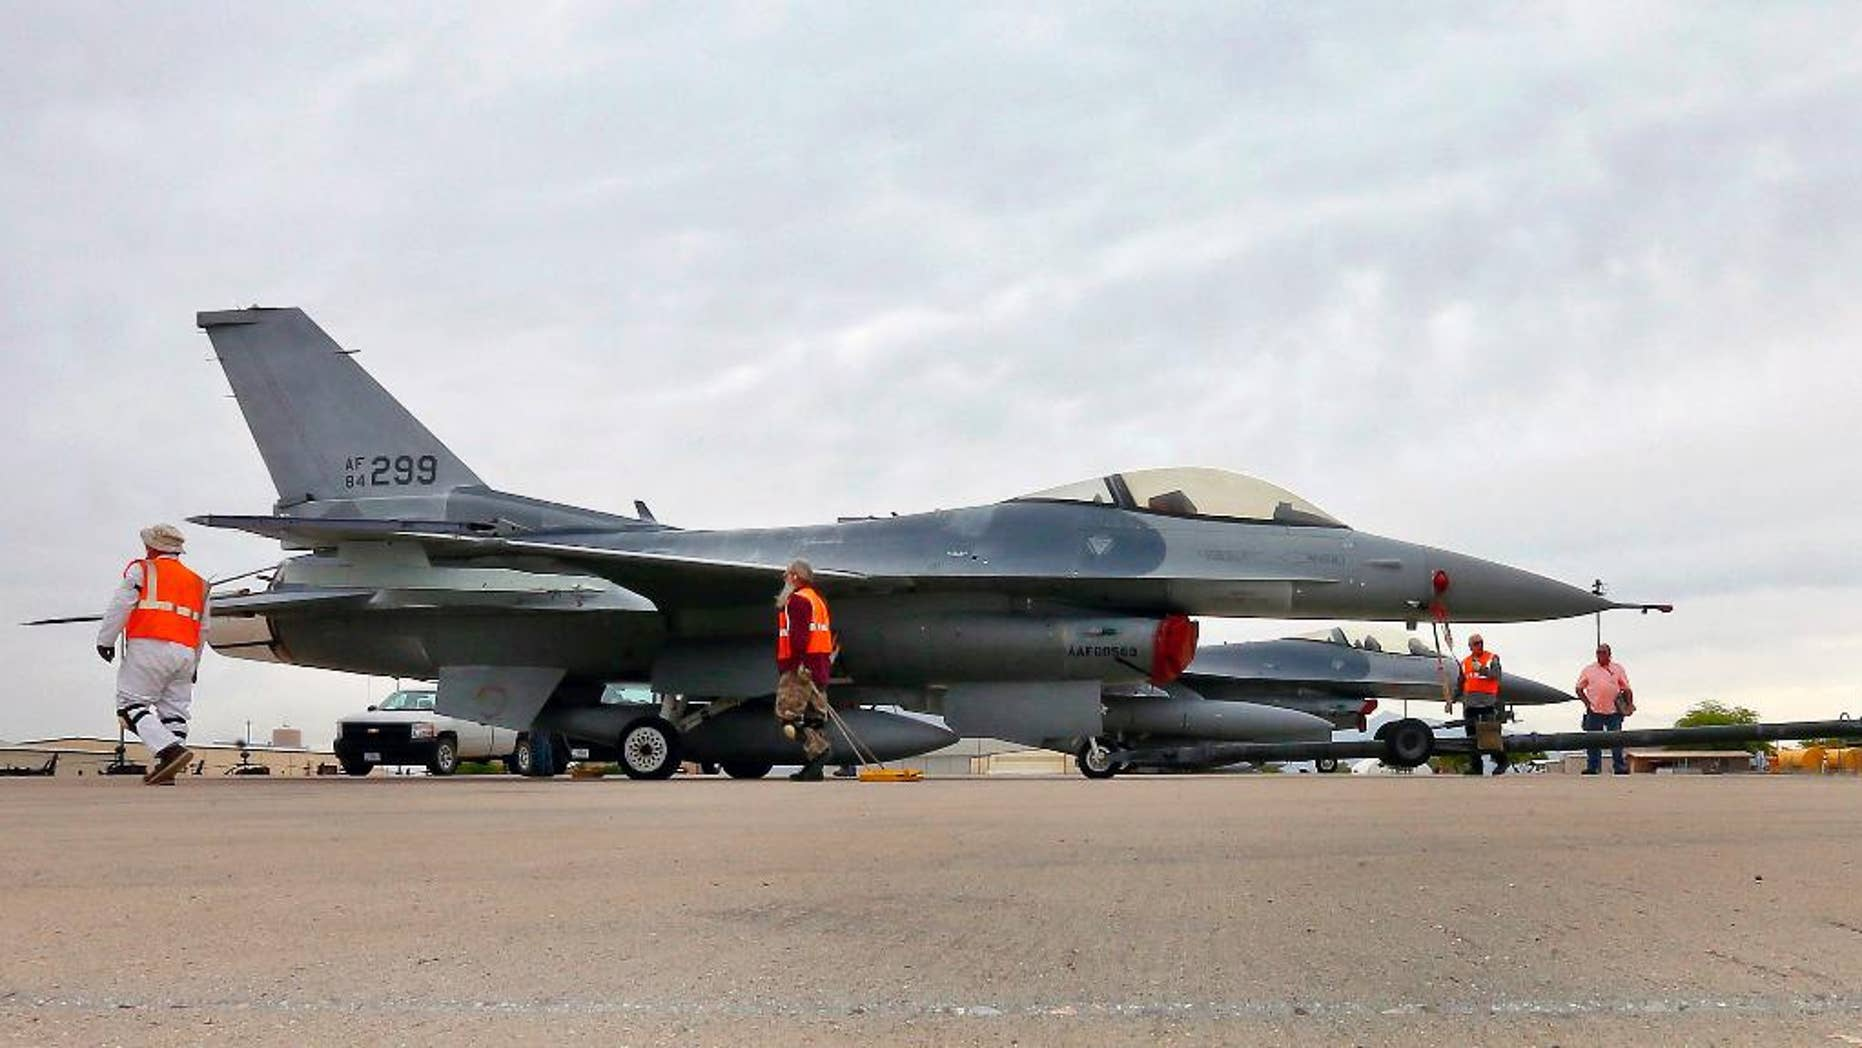 FILE - In this May 15, 2015, file photo, a boneyard crew tows an F-16 Fighting Falcon aircraft prior to the preservation process after its arrival at the 309th Aerospace Maintenance and Regeneration Group at Davis-Monthan Air Force Base in Tucson, Ariz. Military officials confirm a single F-16 Fighting Falcon aircraft crashed Wednesday night, June 24, 2015, about 5 miles east of Douglas Municipal Airport. The pilot with the 162nd Wing Arizona Air National Guard was the only person on board during the night training mission, according to an Arizona Air National Guard statement.  The pilot's identity and condition is unknown at this time.  (AP Photo/Matt York, File)